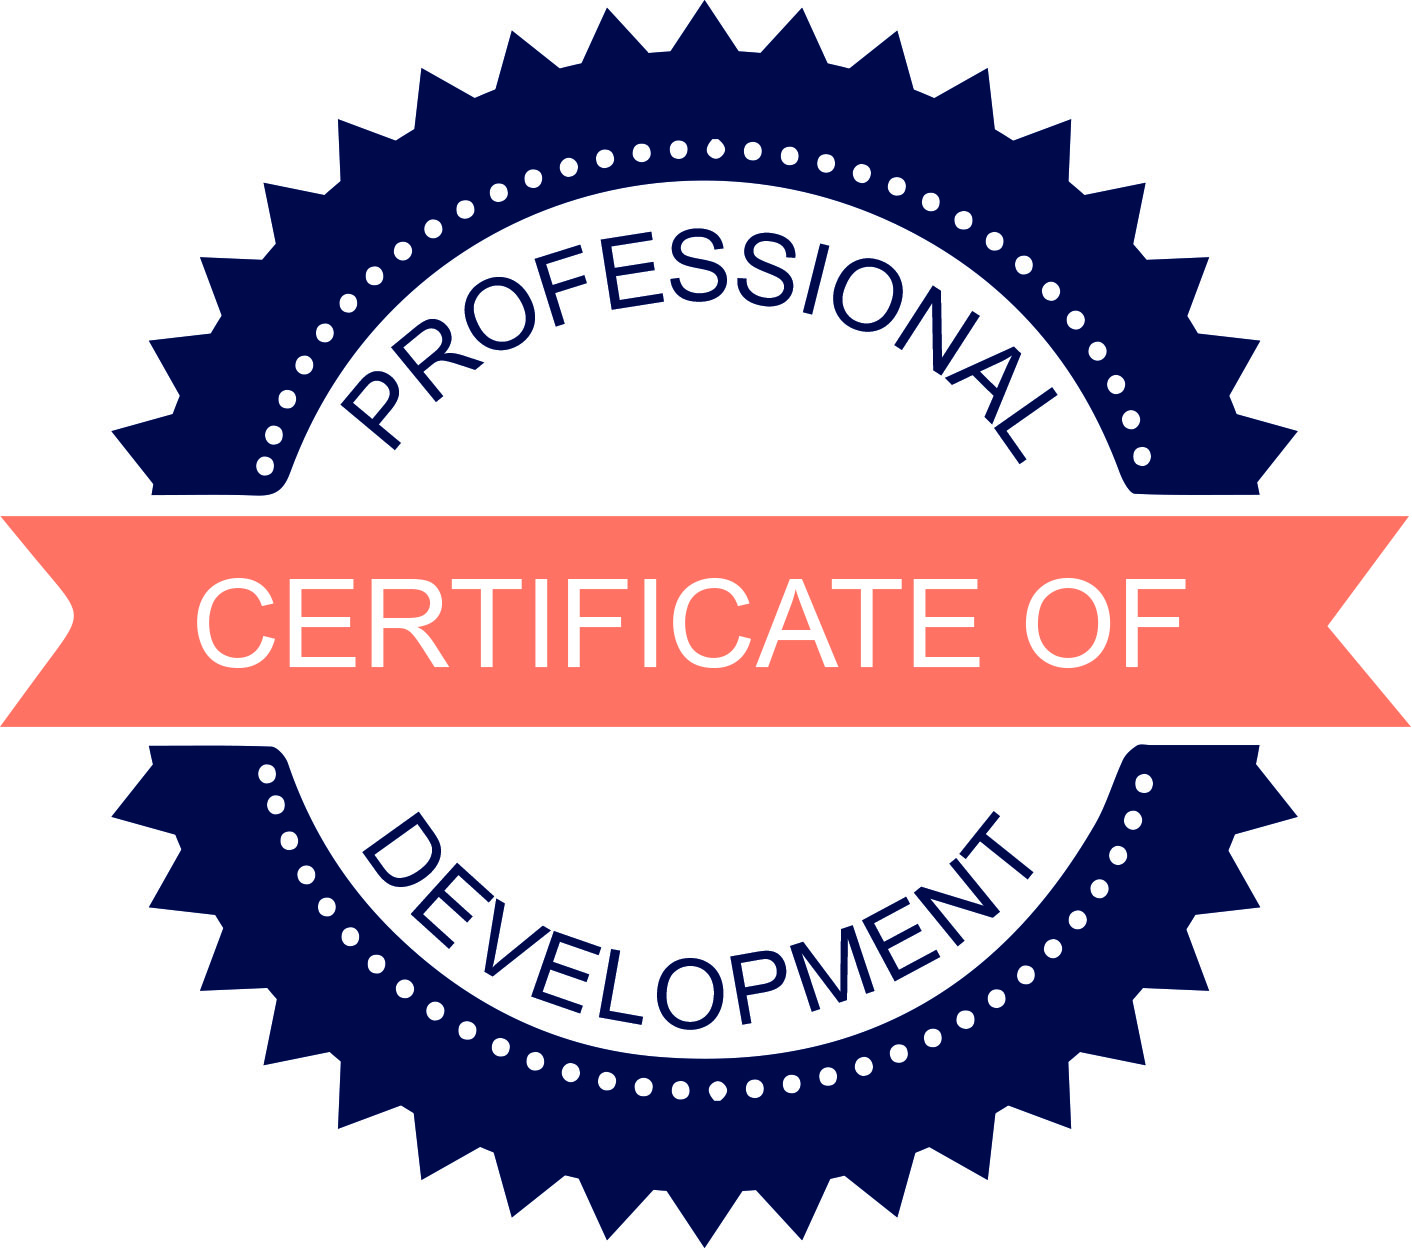 Certificate of Professional Development u2013 UConn Center for ...